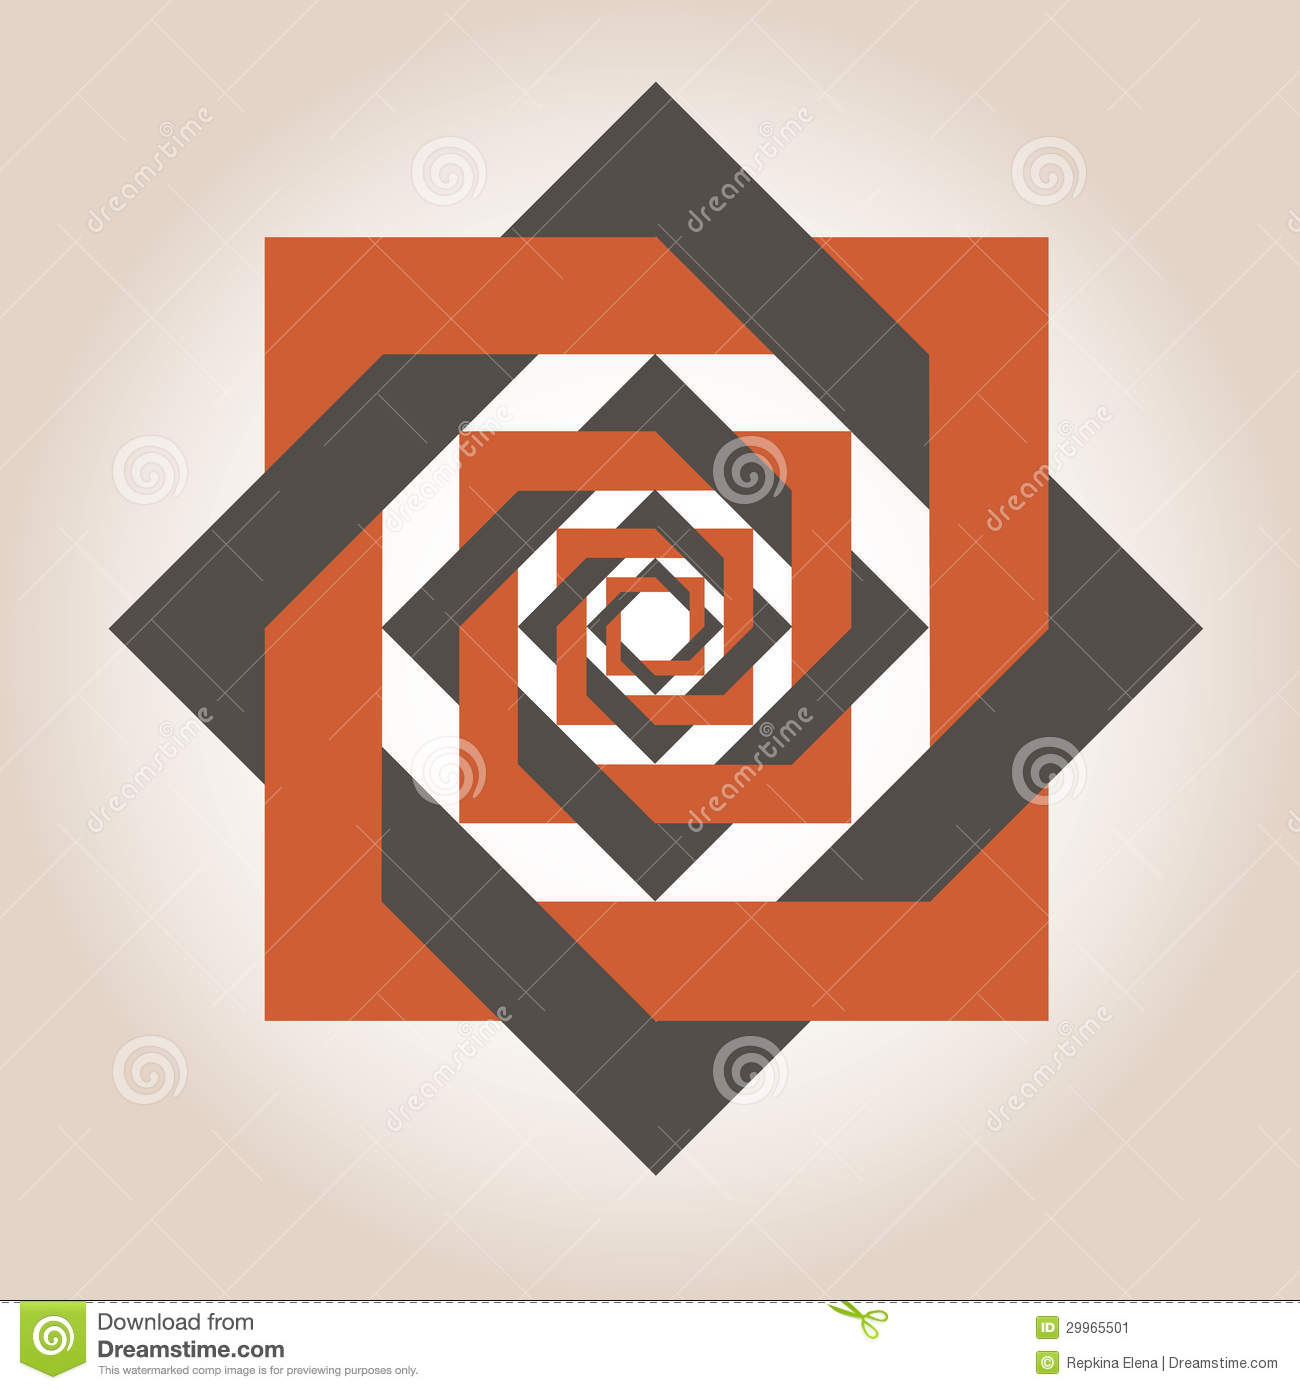 Square Geometrical Designs Stock Image Image 29965501